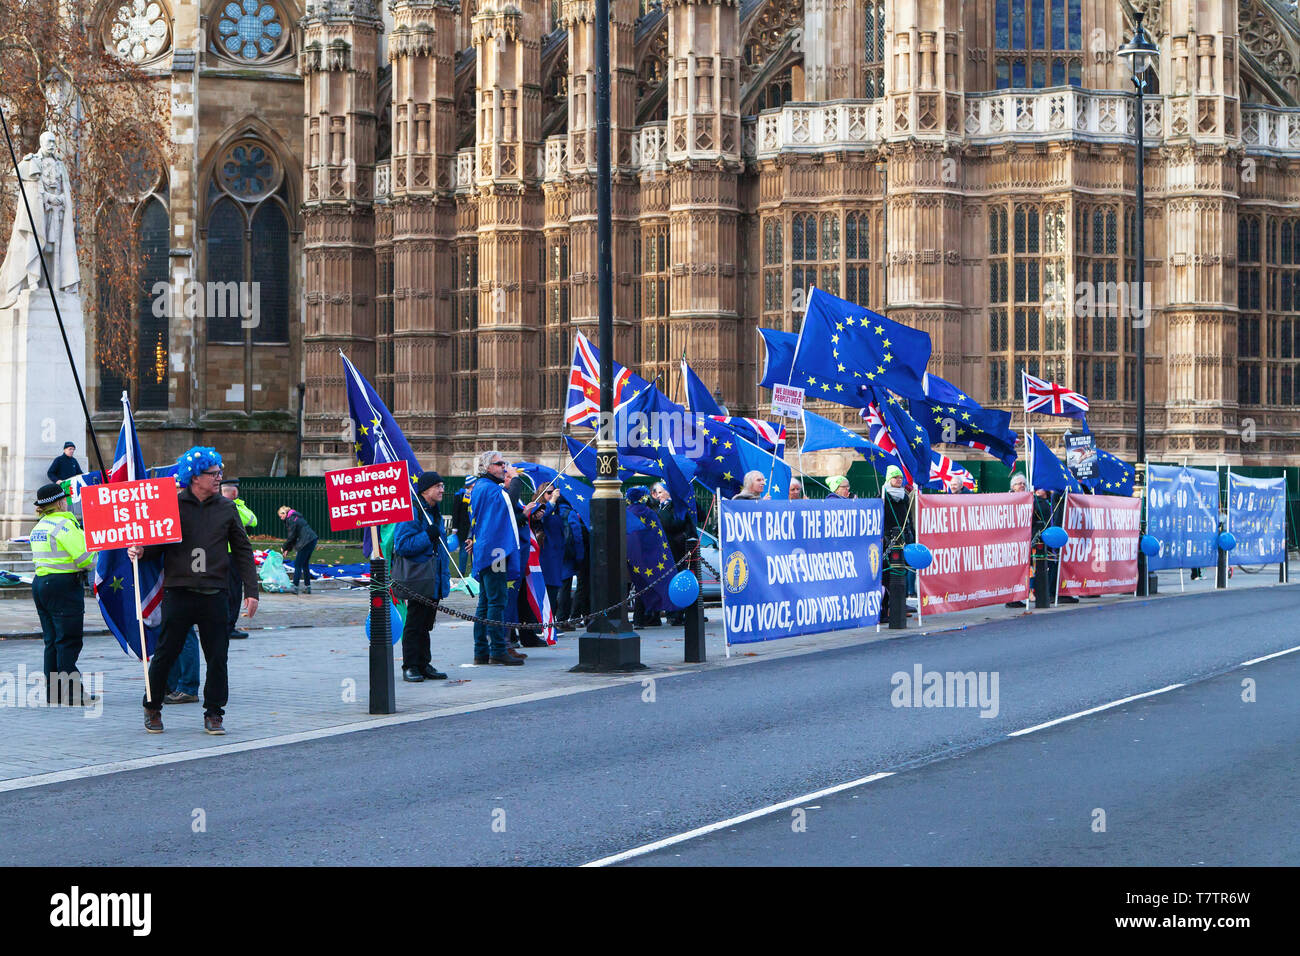 London, United Kingdom - December 19, 2018: Demonstrators against Brexit hold placards and European Union flags in front of the Houses of Parliament o - Stock Image